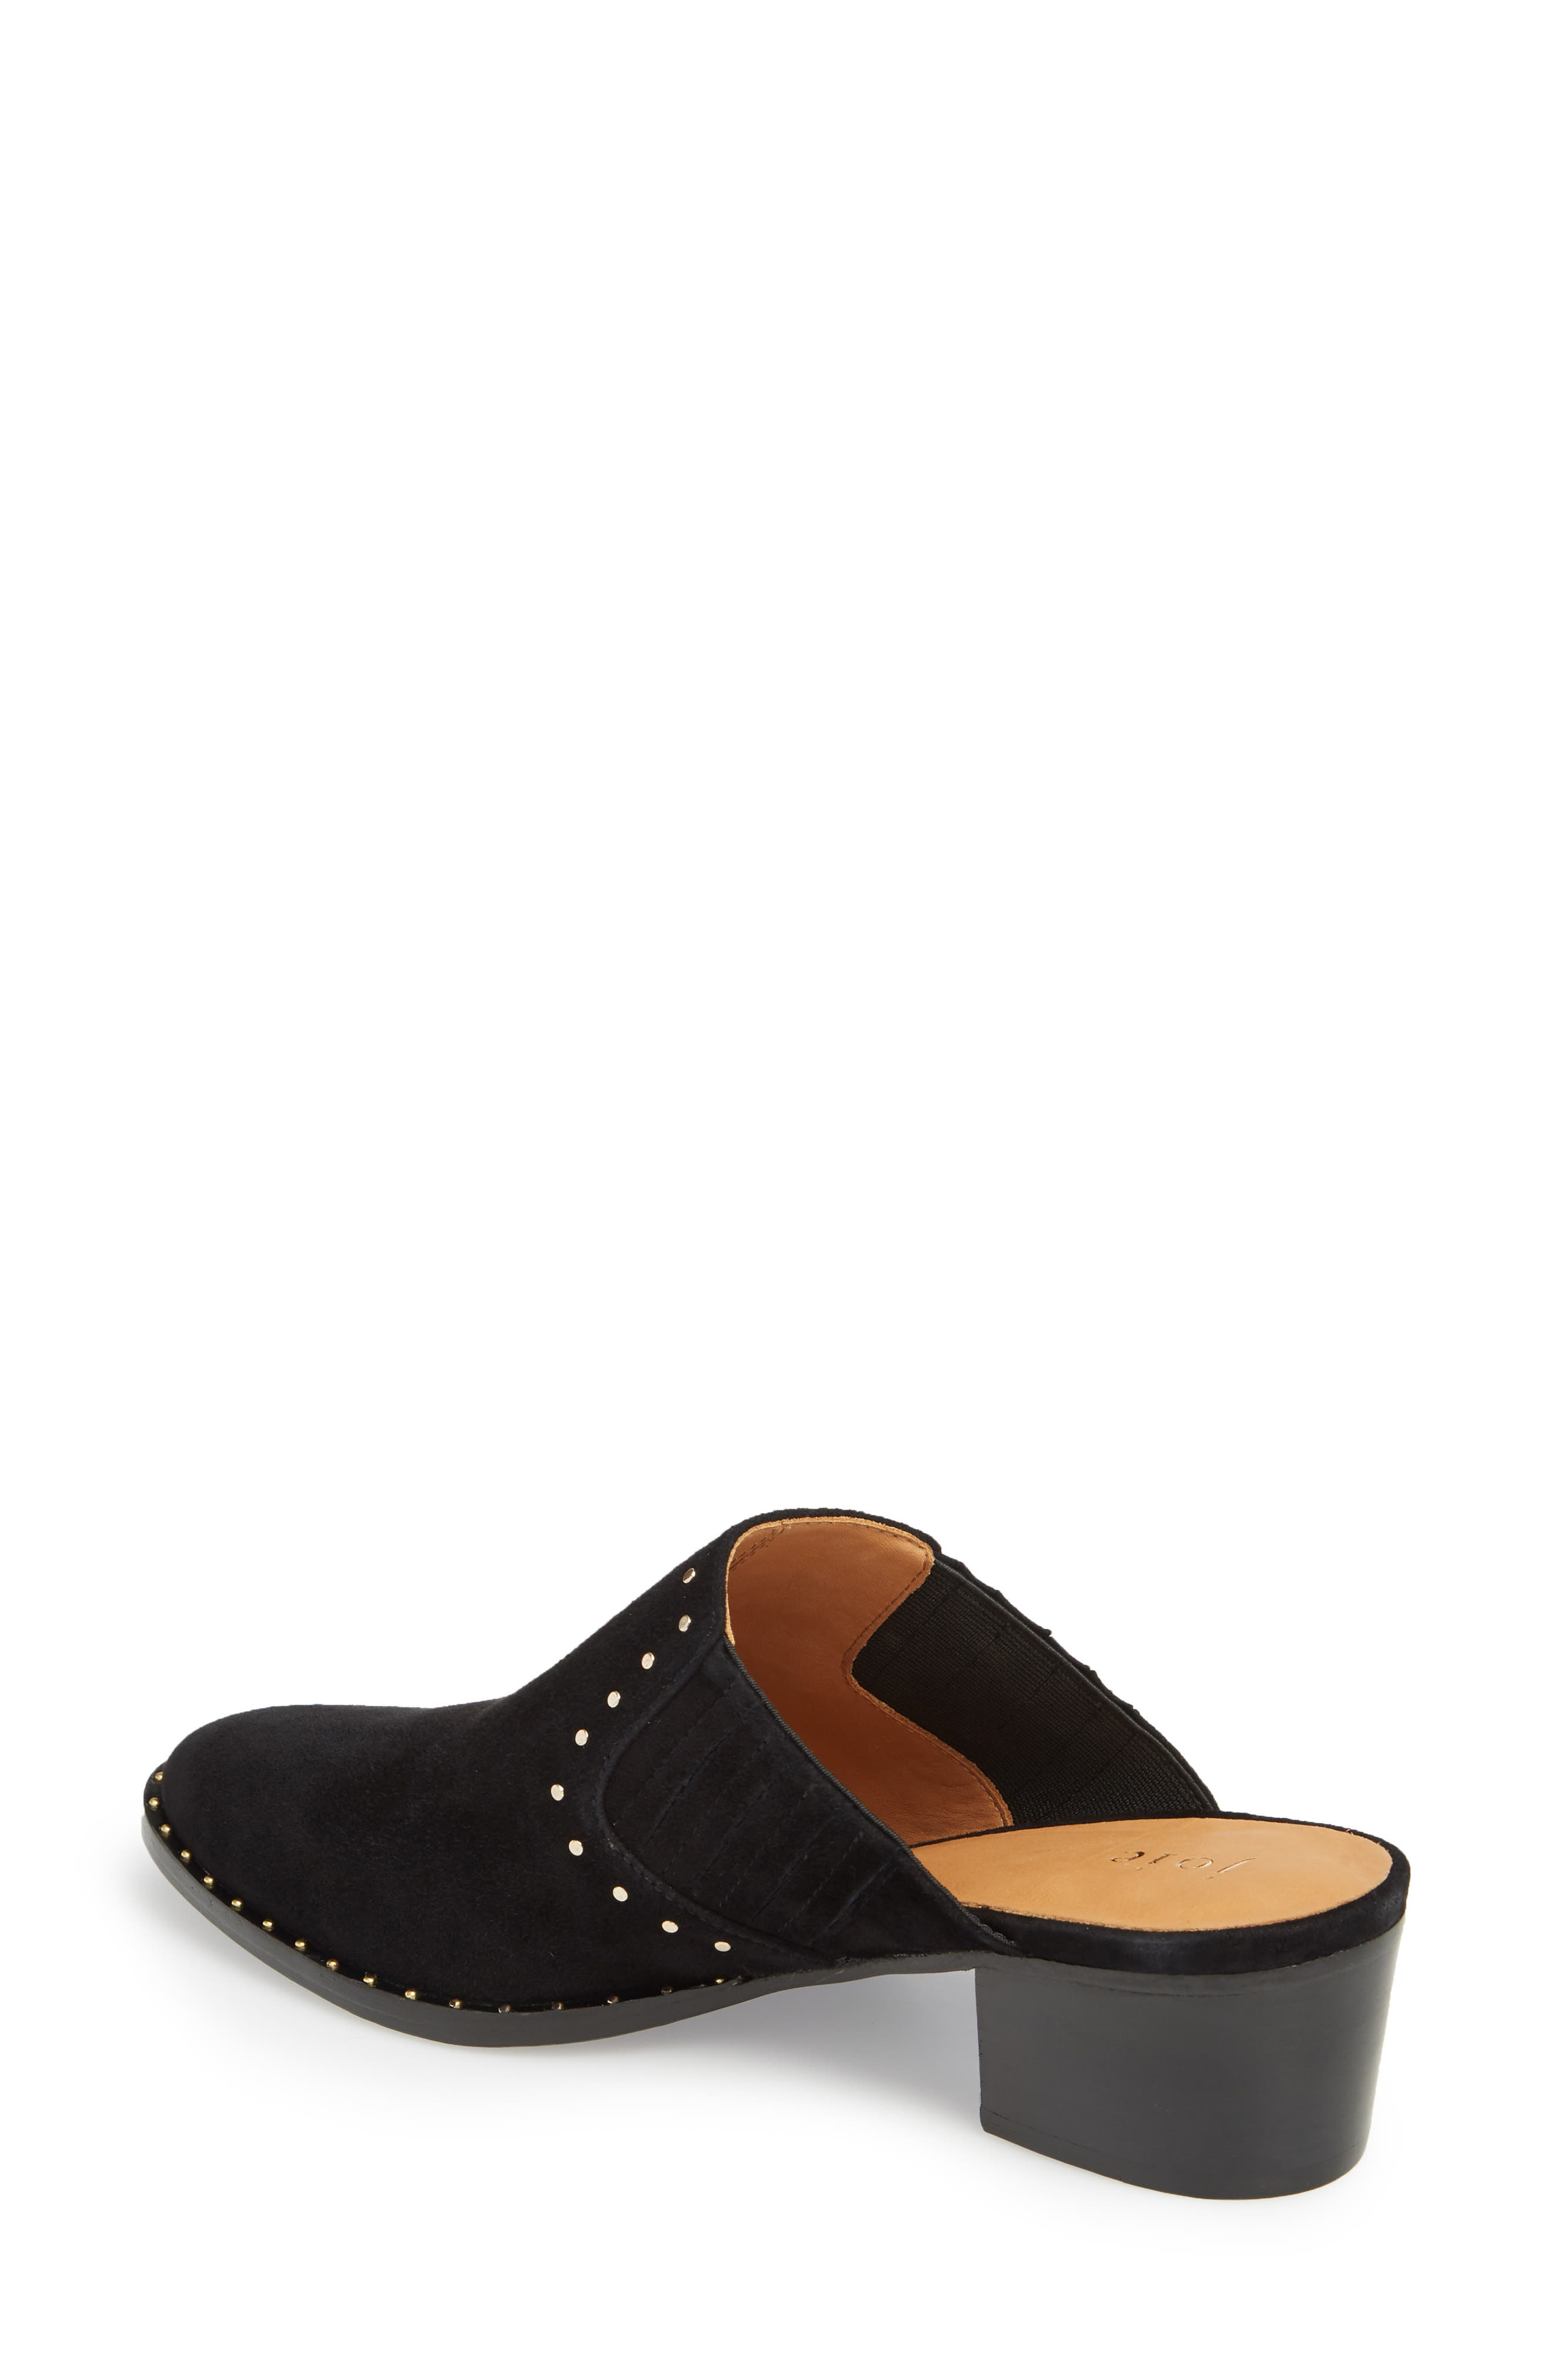 Fayla Studded Mule,                             Alternate thumbnail 2, color,                             Nero